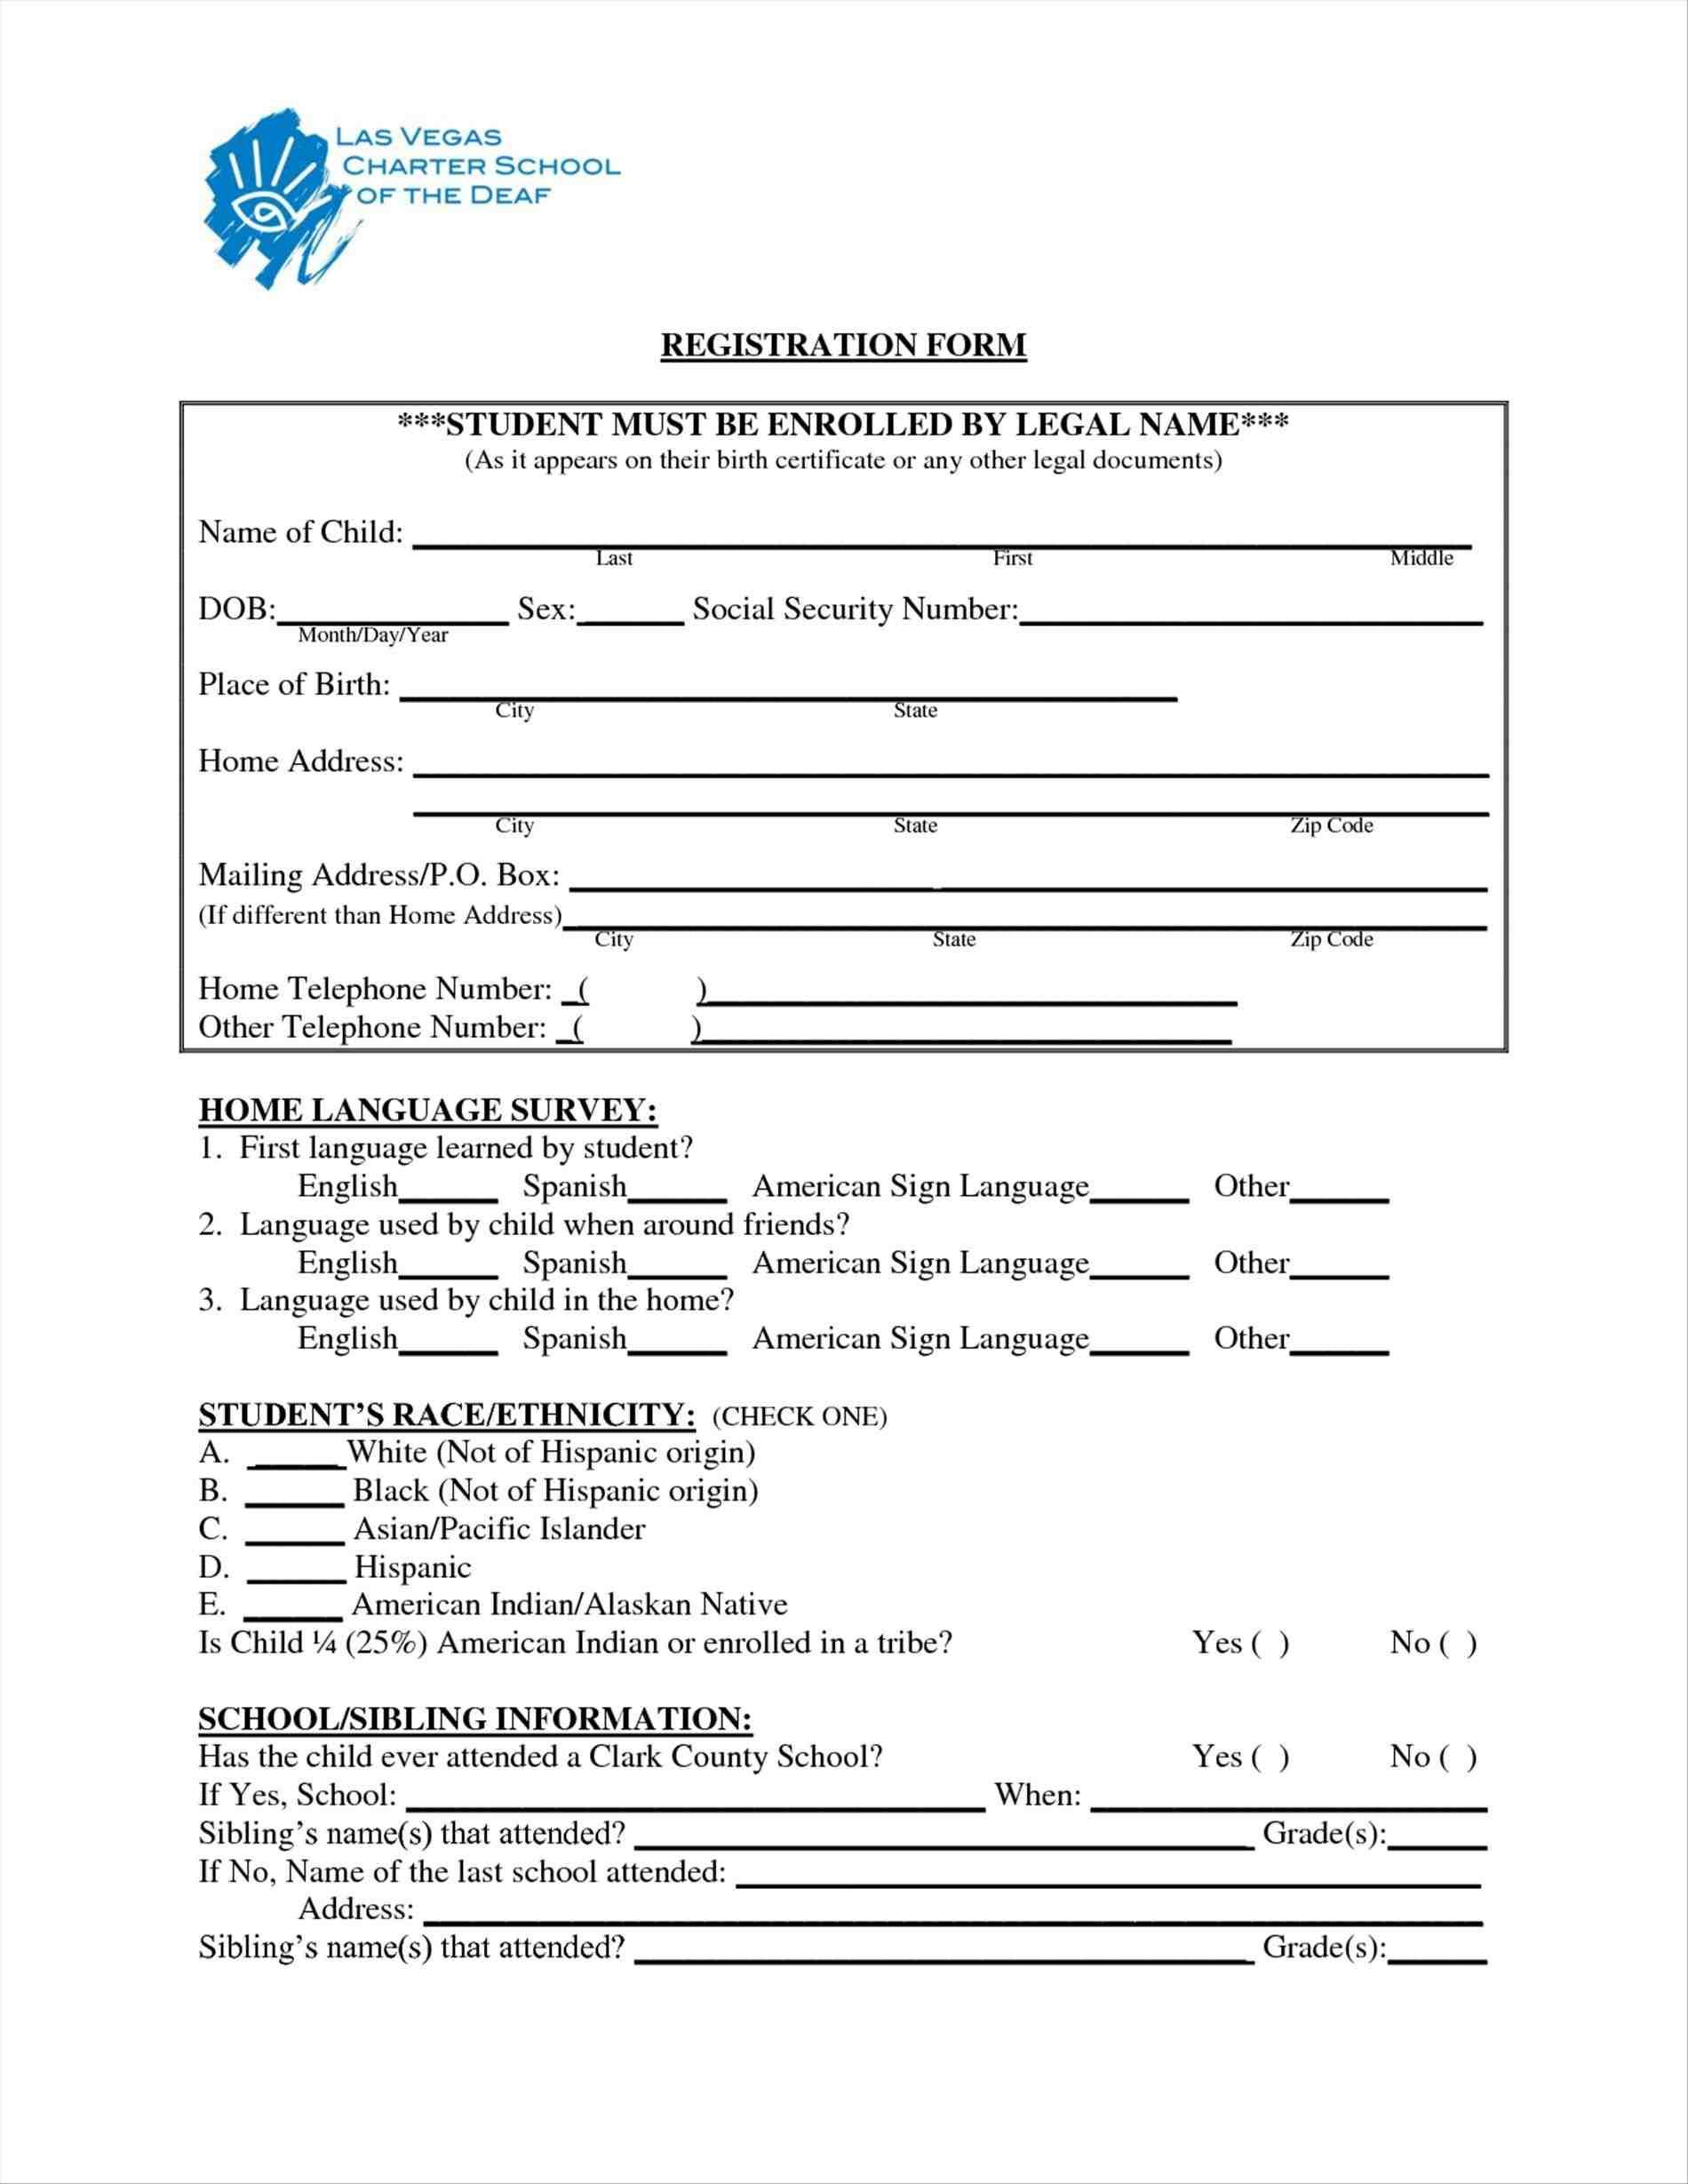 Marriage Certificate Translation Template Spanish To English